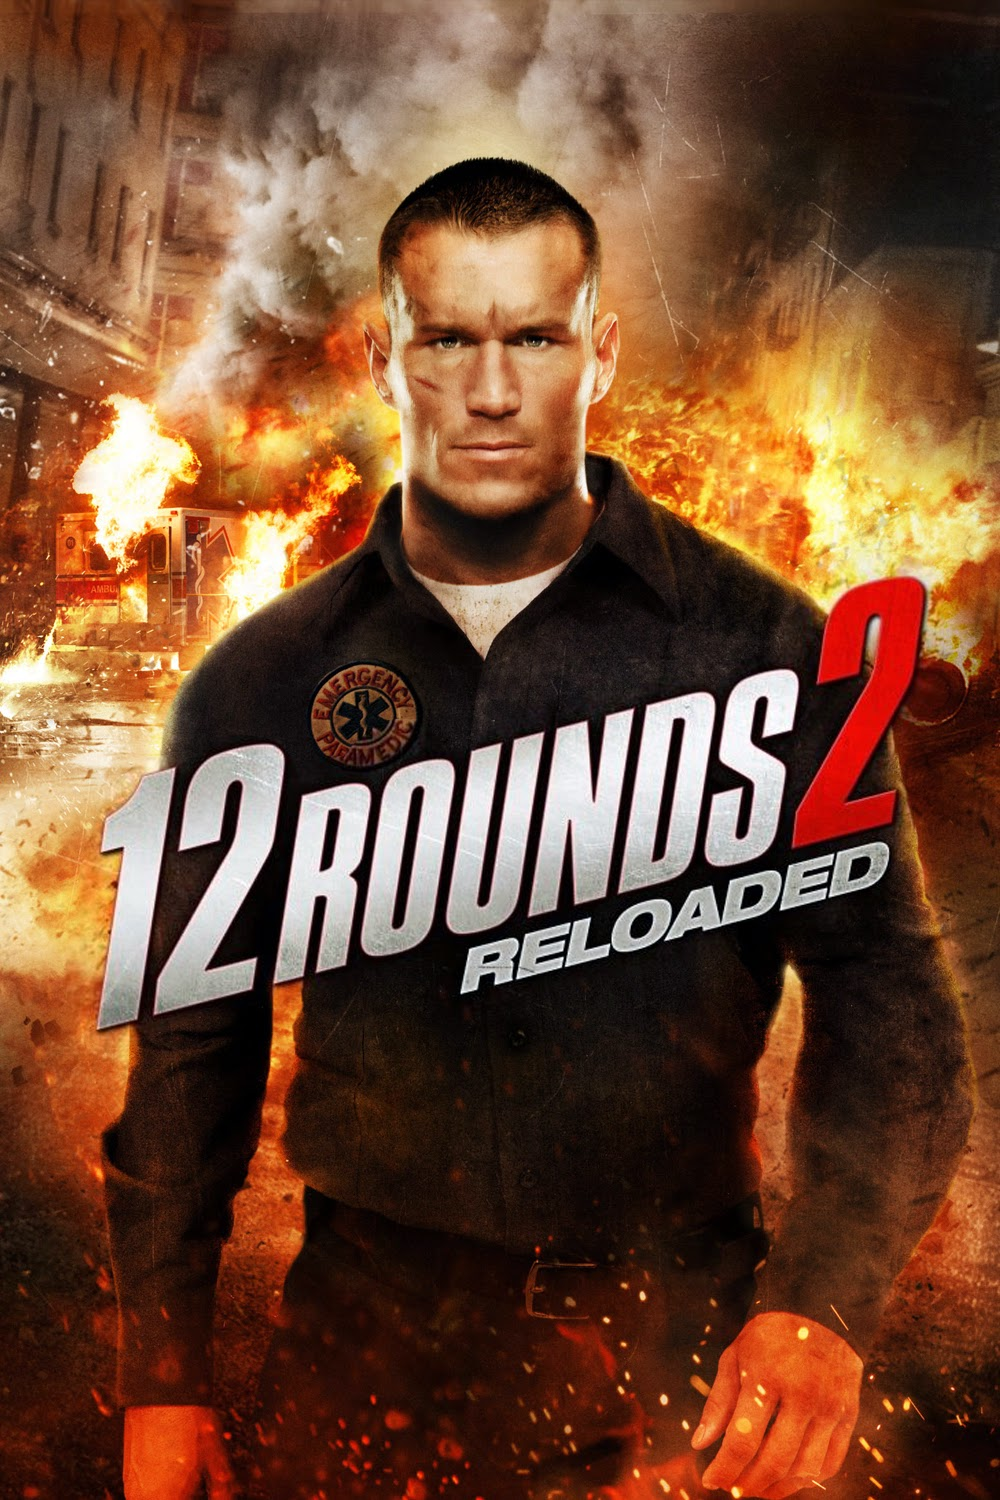 12 trampas 2  (12 Rounds 2: Reloaded)